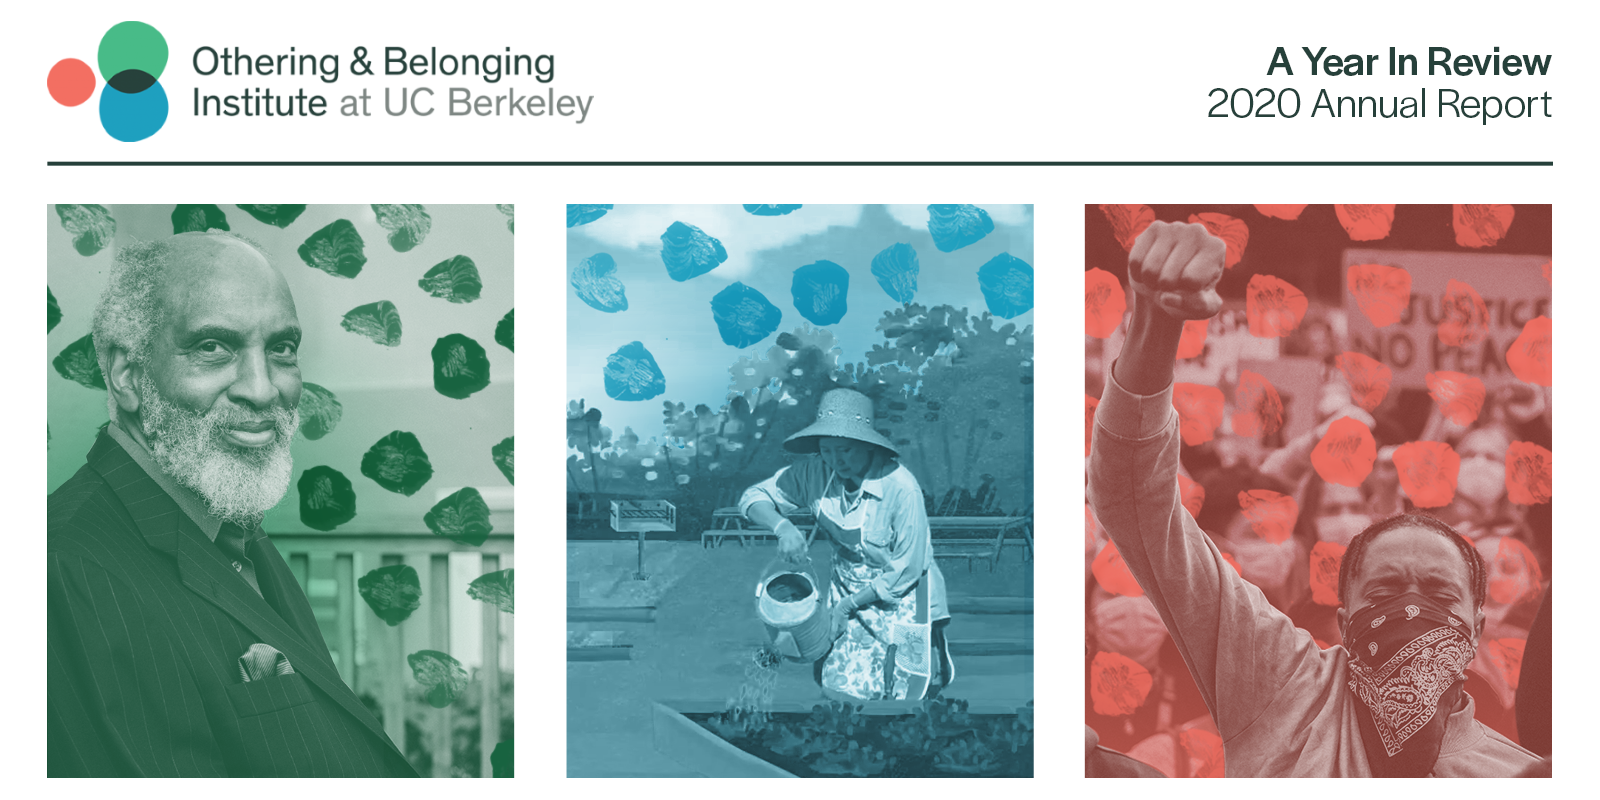 """The cover of the report reads """"A Year in Review: 2020 Annual Report."""" Three images sit below; at left is a portrait of john a. powell in green light; at center is a woman gardening with blue overlay, and at right is a man with a raised fist in red."""